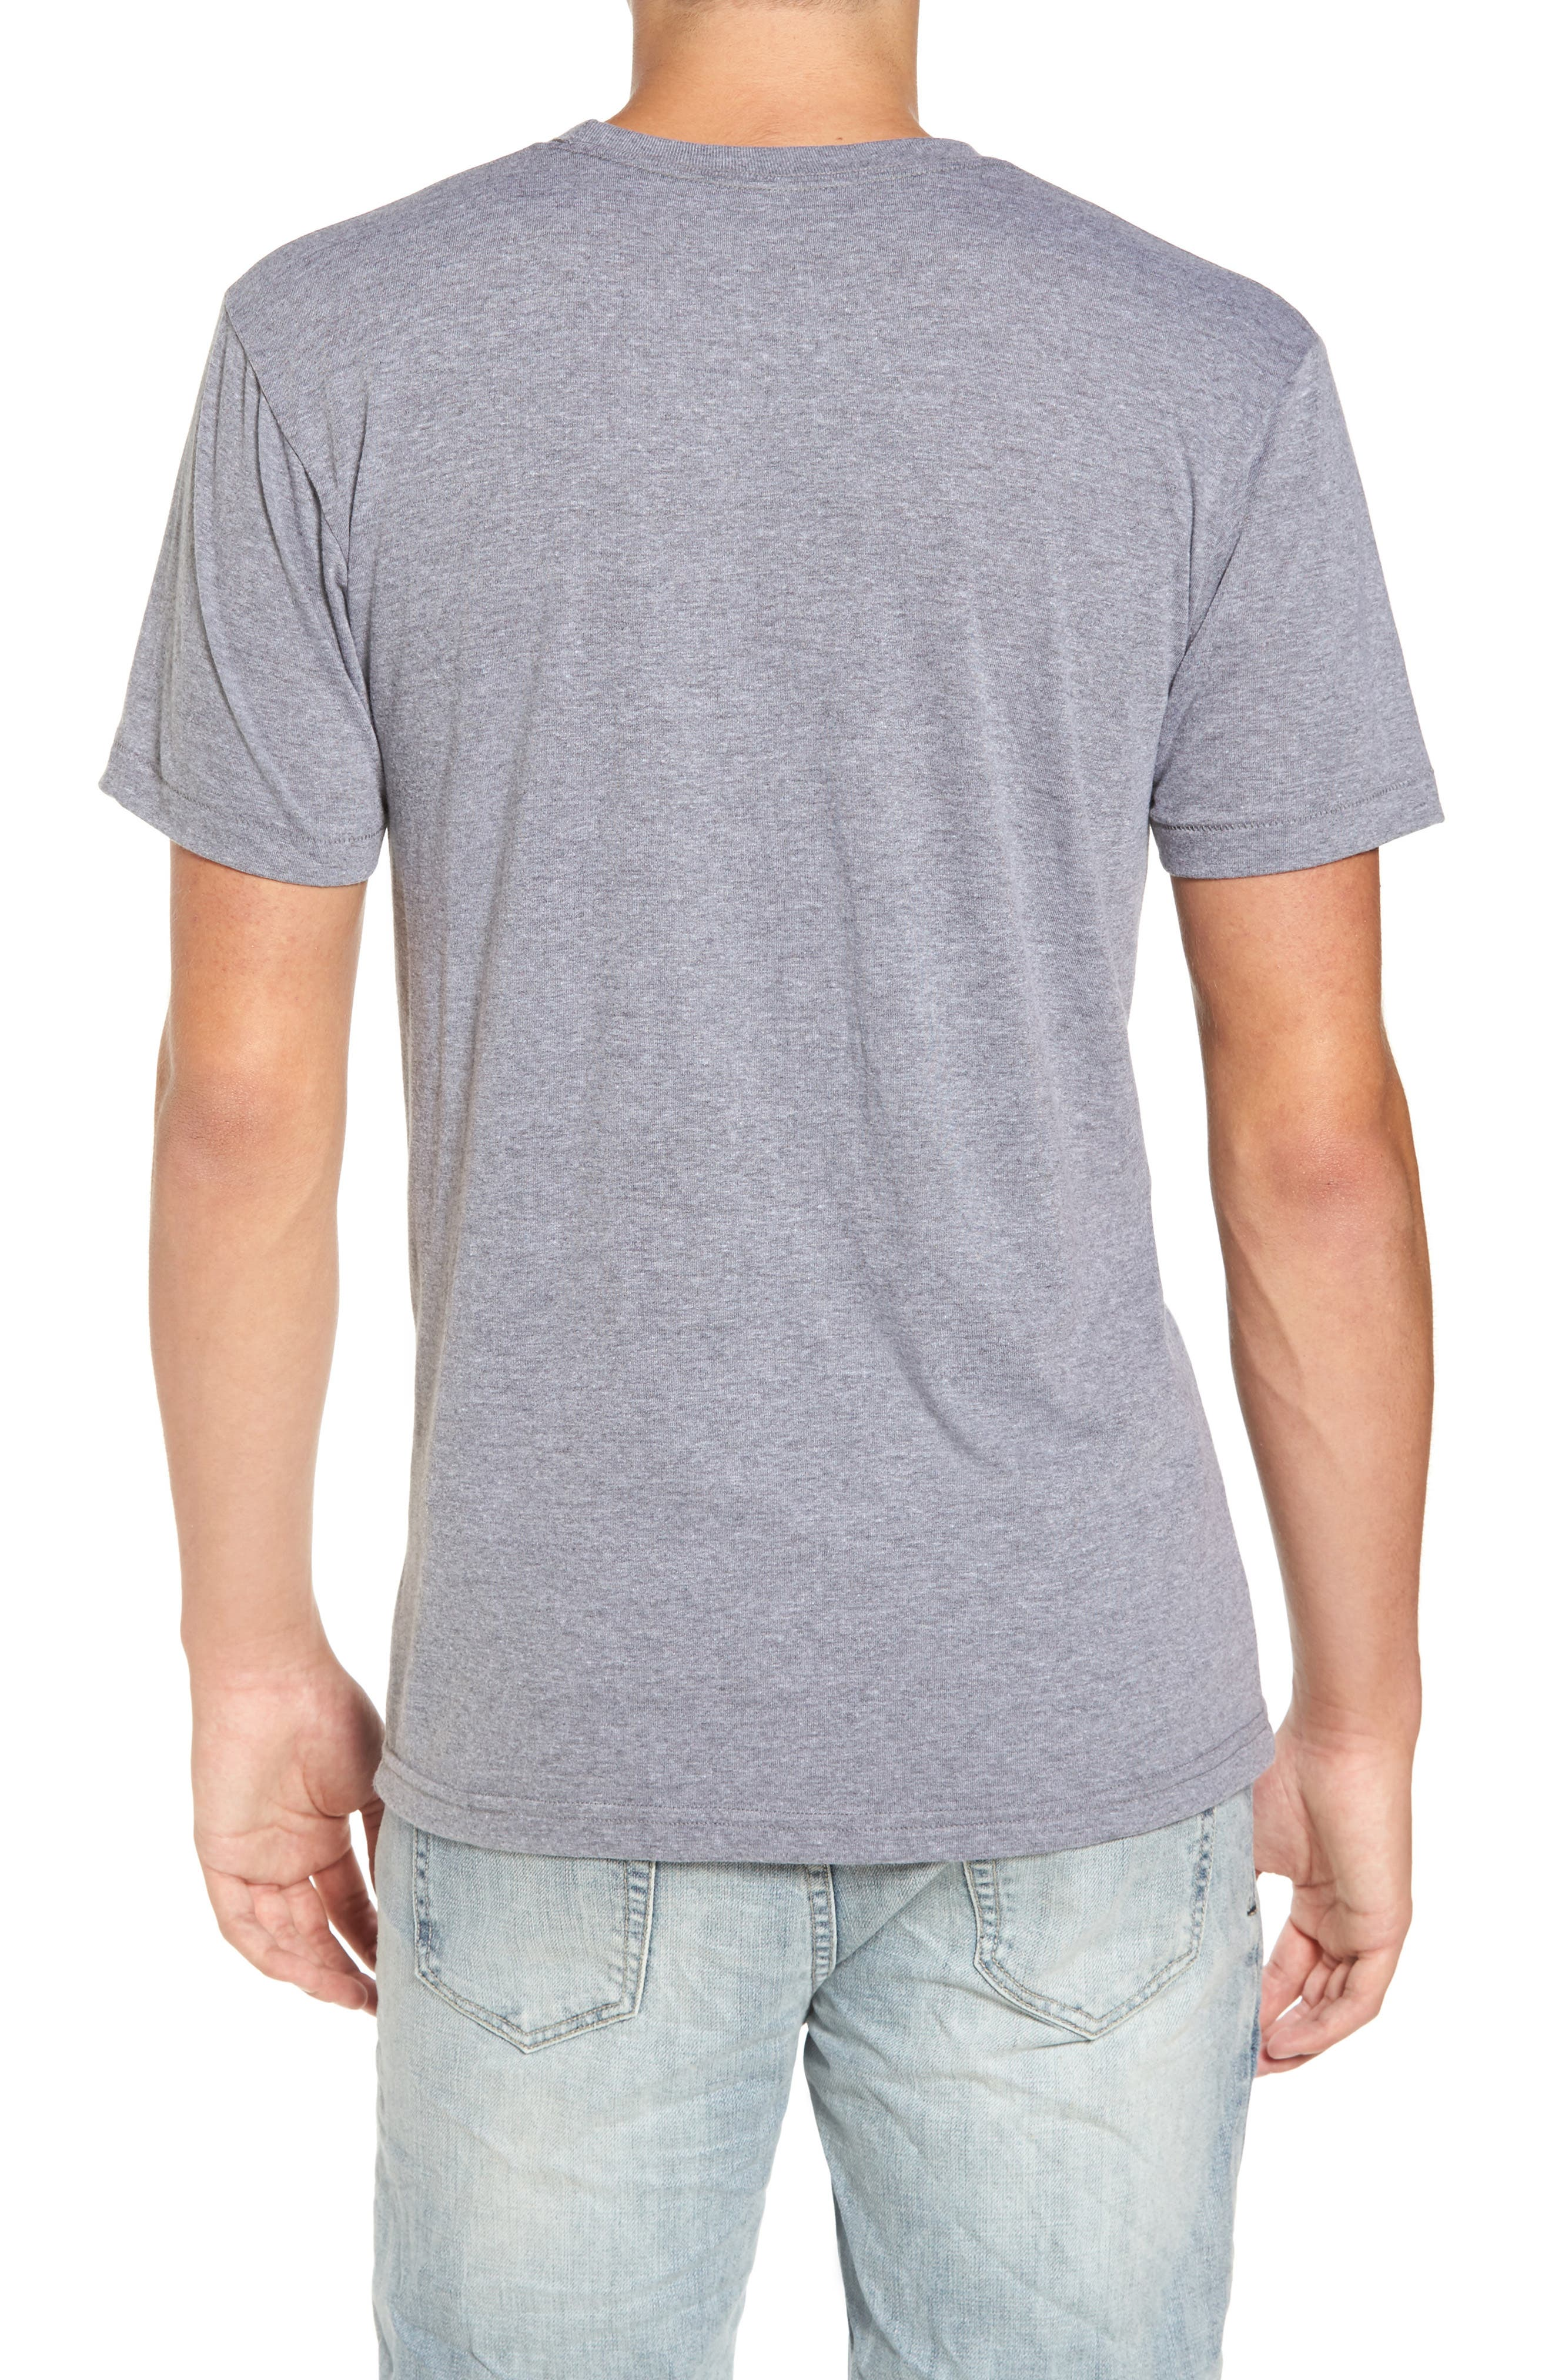 NW Trident Embroidered T-Shirt,                             Alternate thumbnail 5, color,